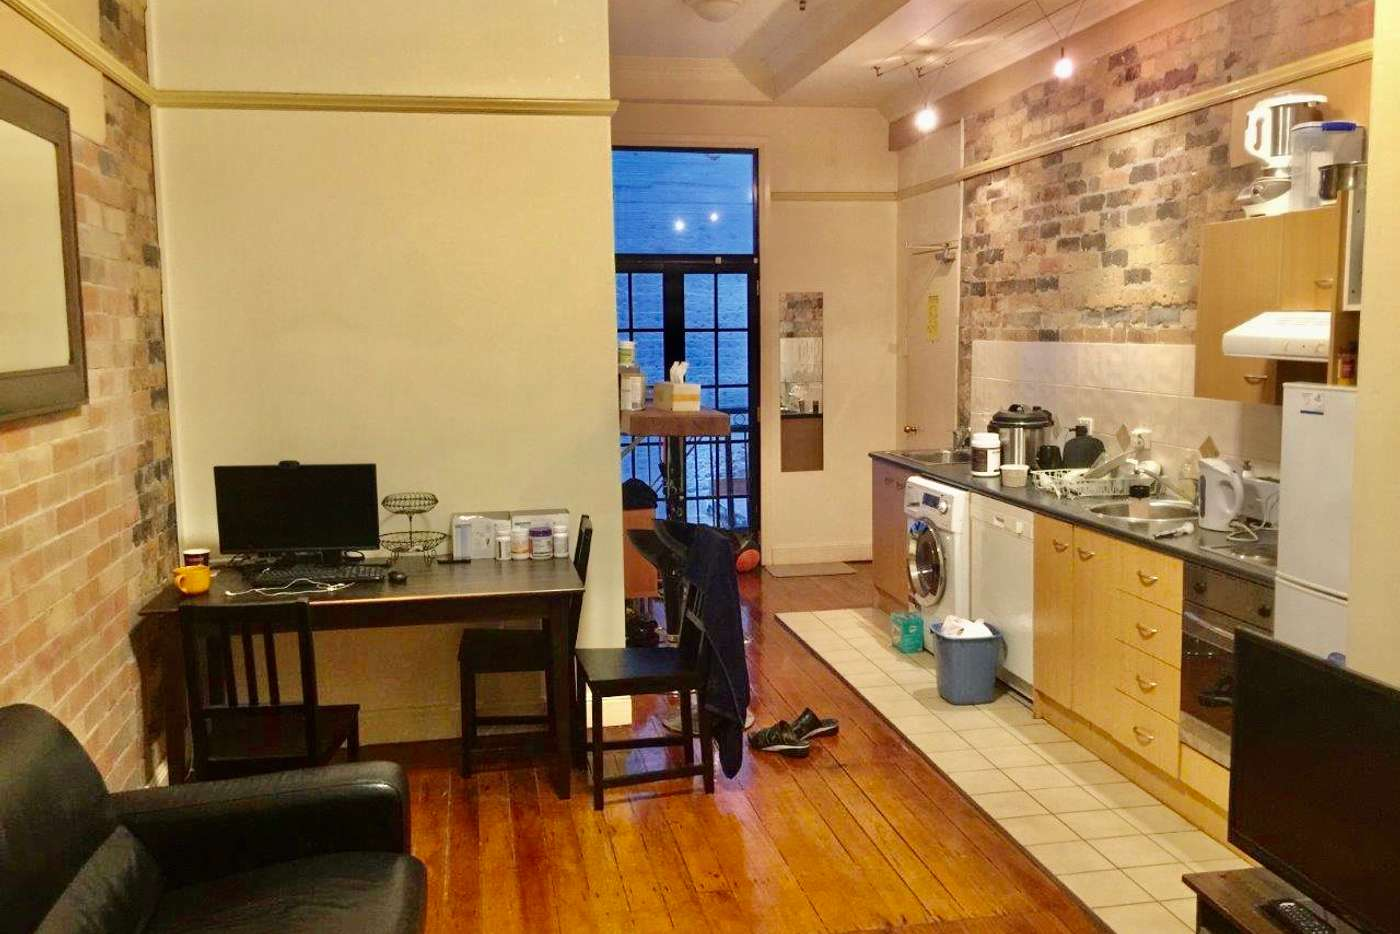 Main view of Homely unit listing, 10/53 Edward Street, Brisbane QLD 4000